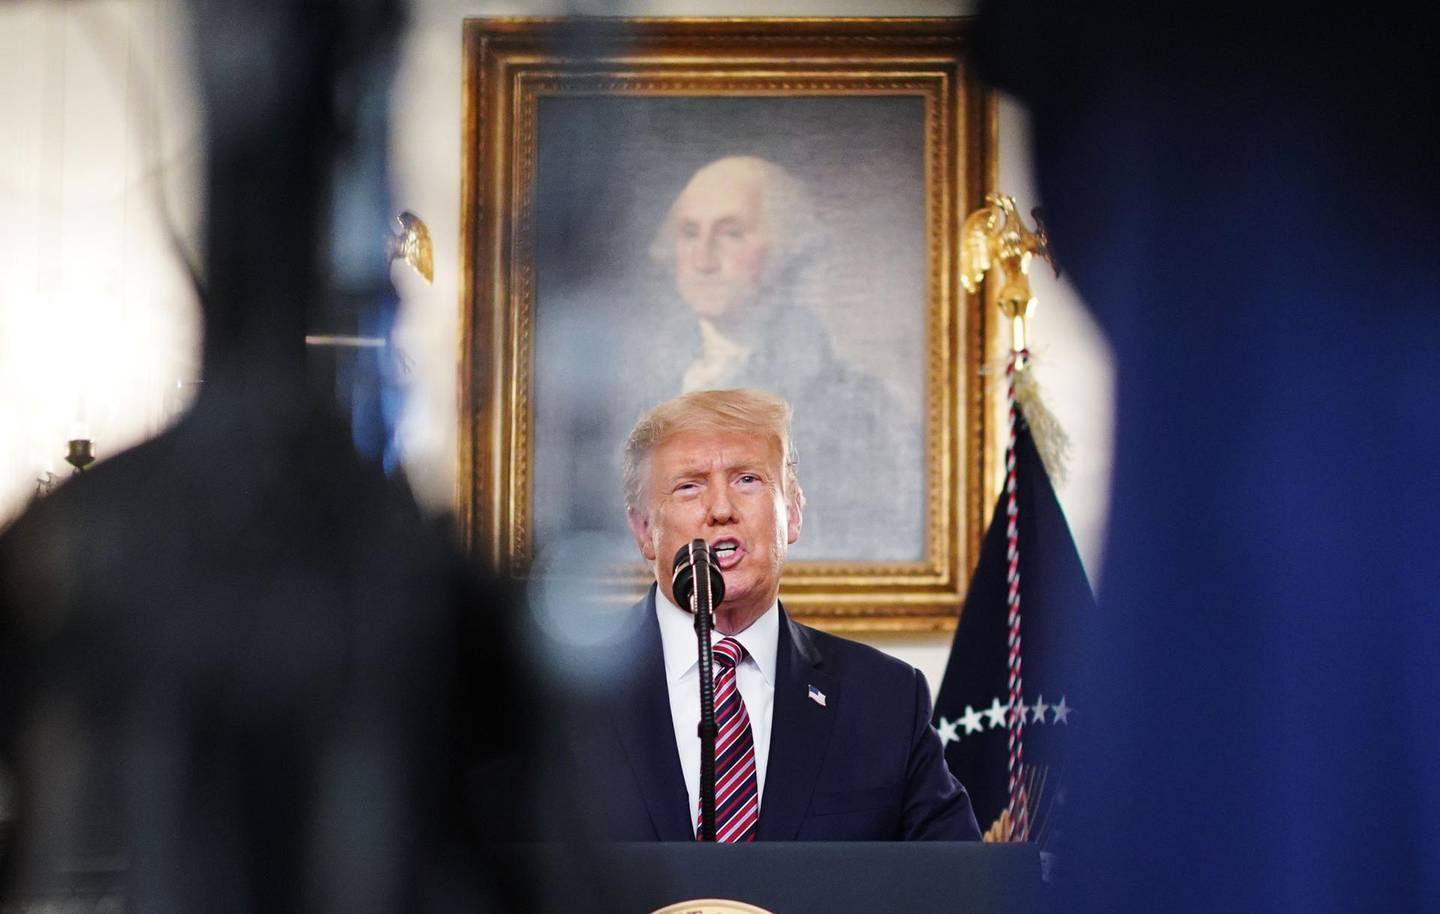 US President Donald Trump speaks on judicial appointments in the Diplomatic Reception Room of the White House in Washington, DC on September 9, 2020. / AFP / MANDEL NGAN